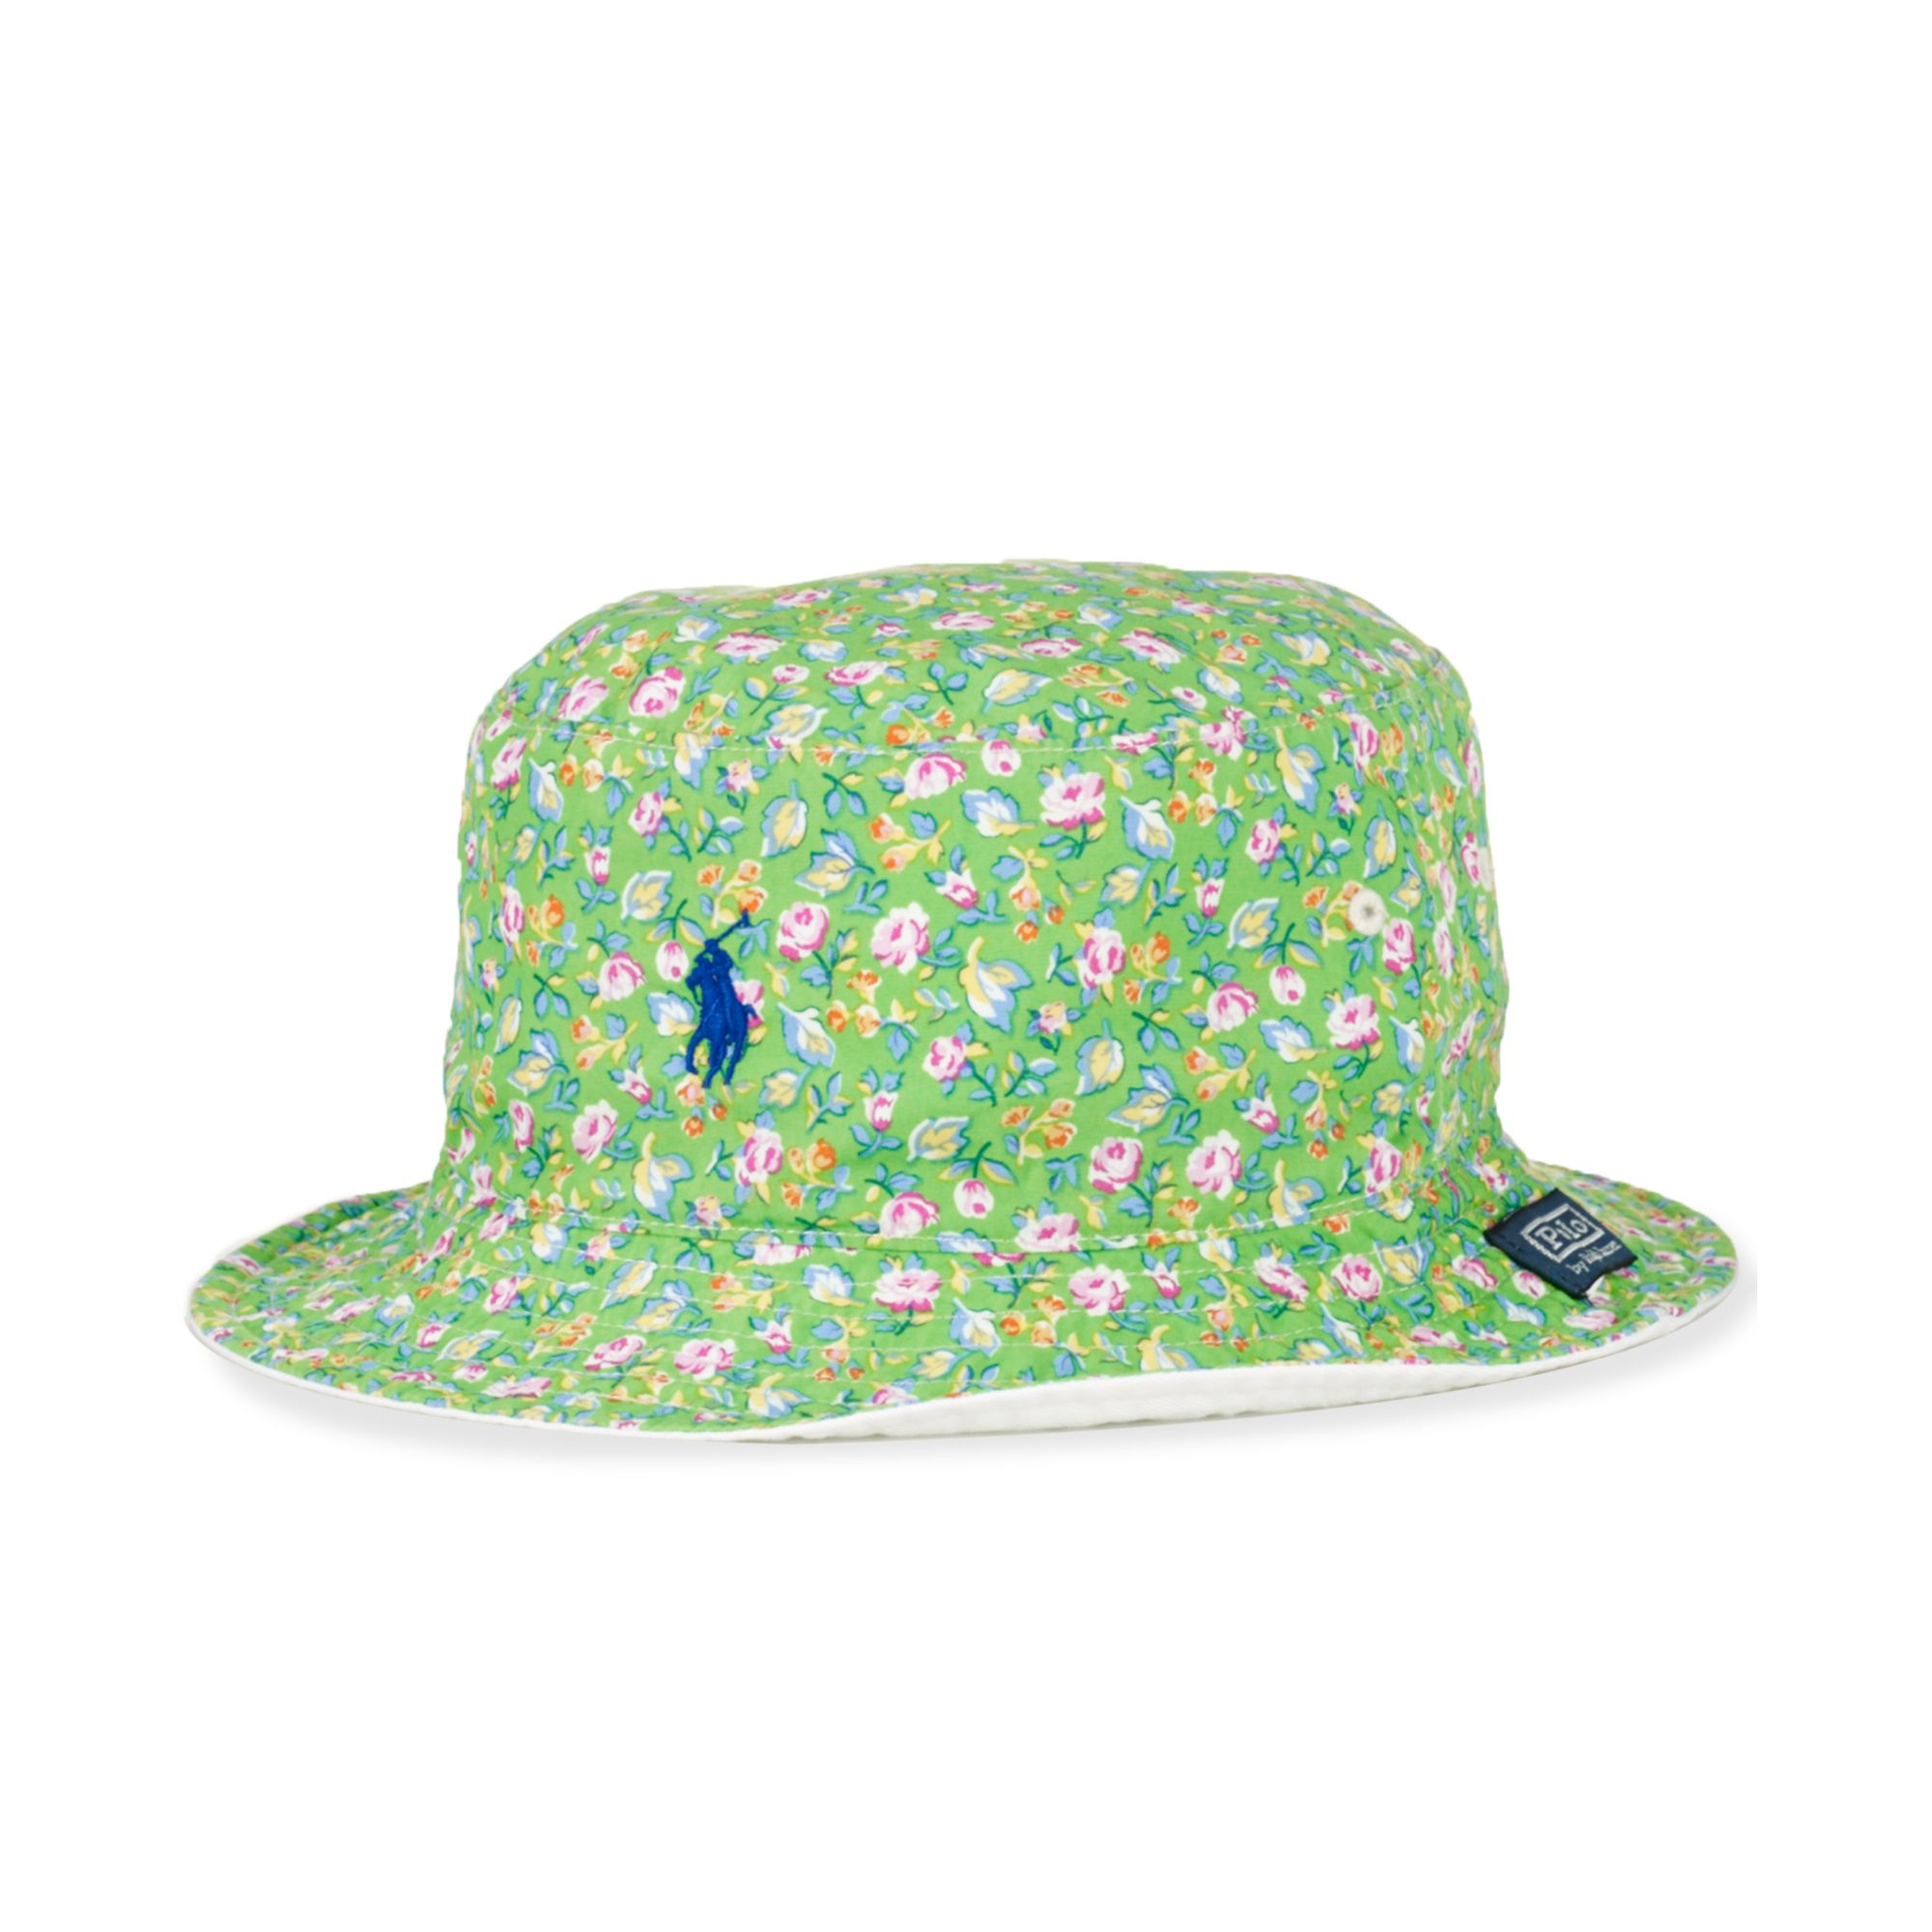 975752ef016 Gallery. Previously sold at  Macy s · Men s Bucket Hats Men s Ralph Lauren  ...